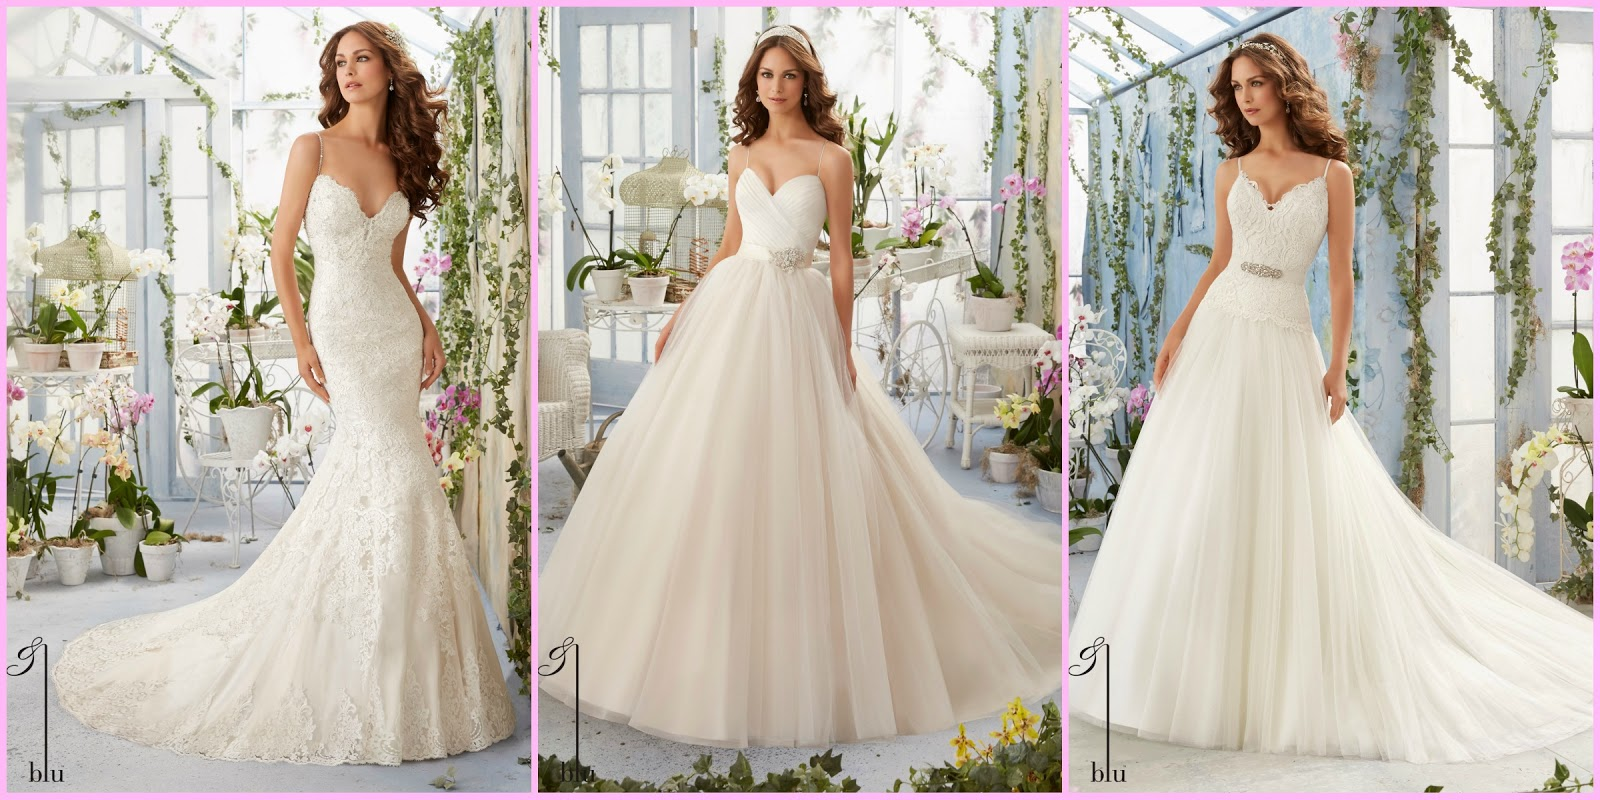 Brides of America Online Store: October 2015